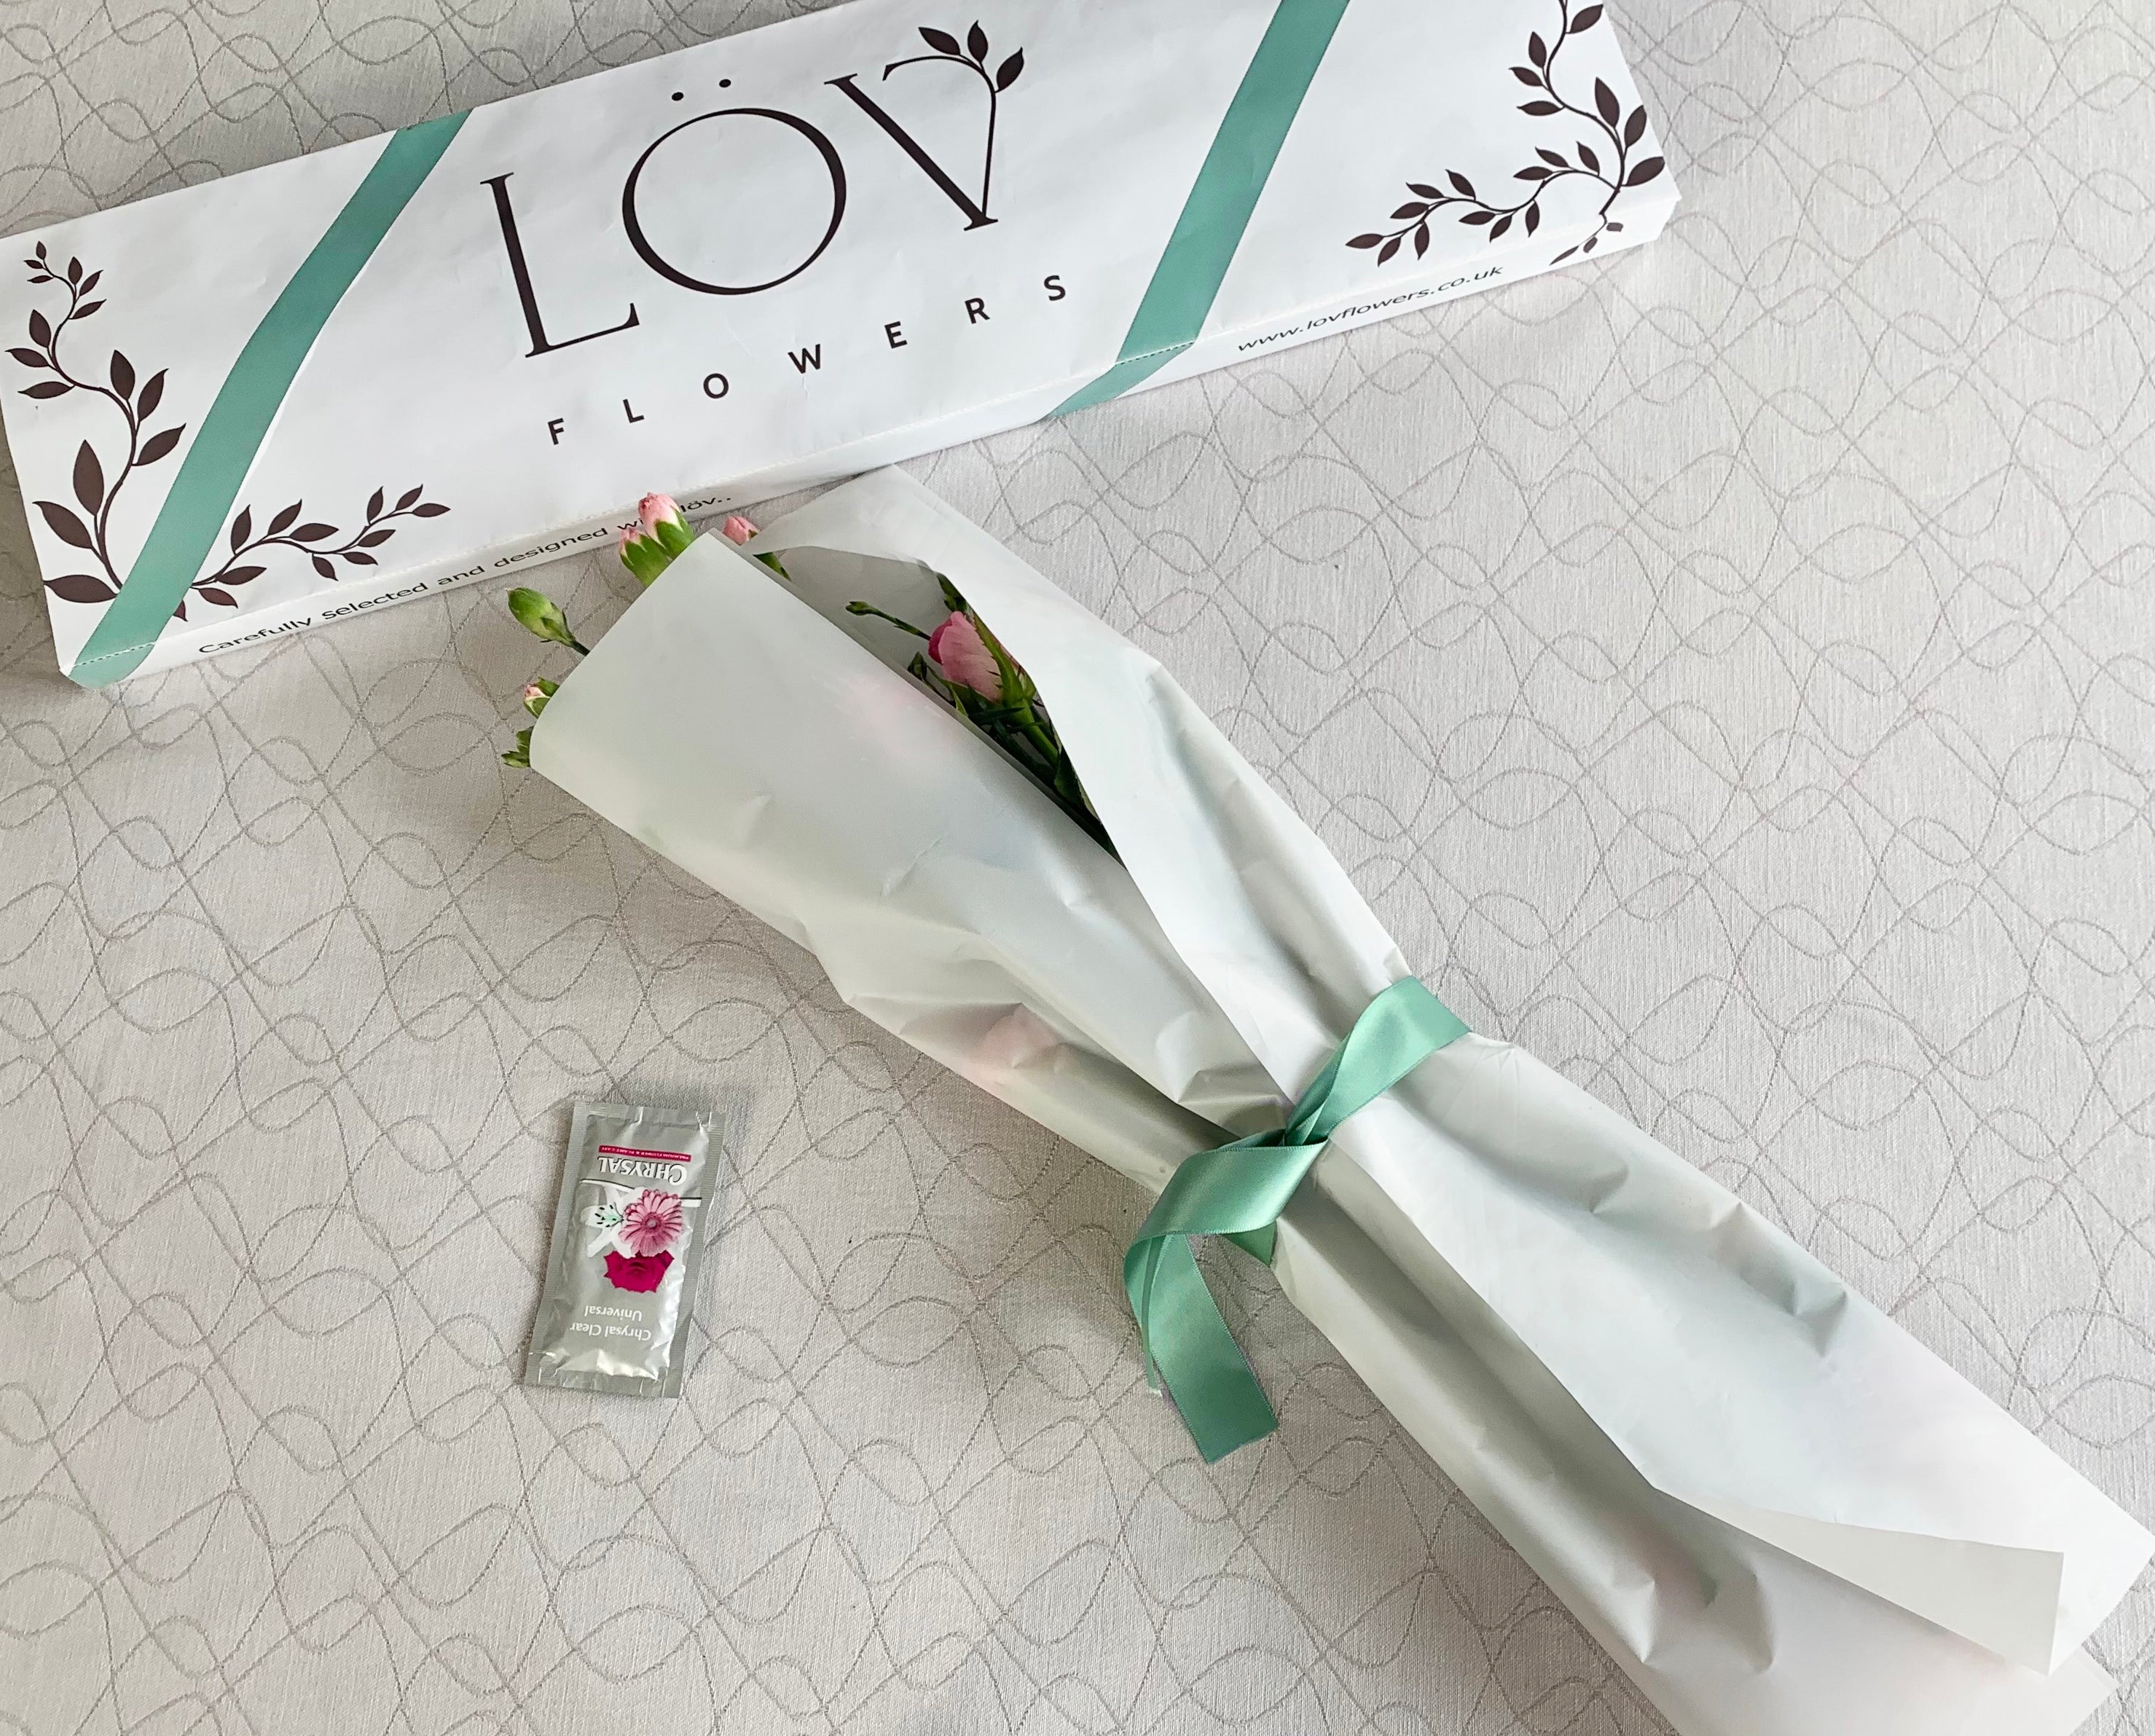 lov letterbox flowers uk delivery london free next day